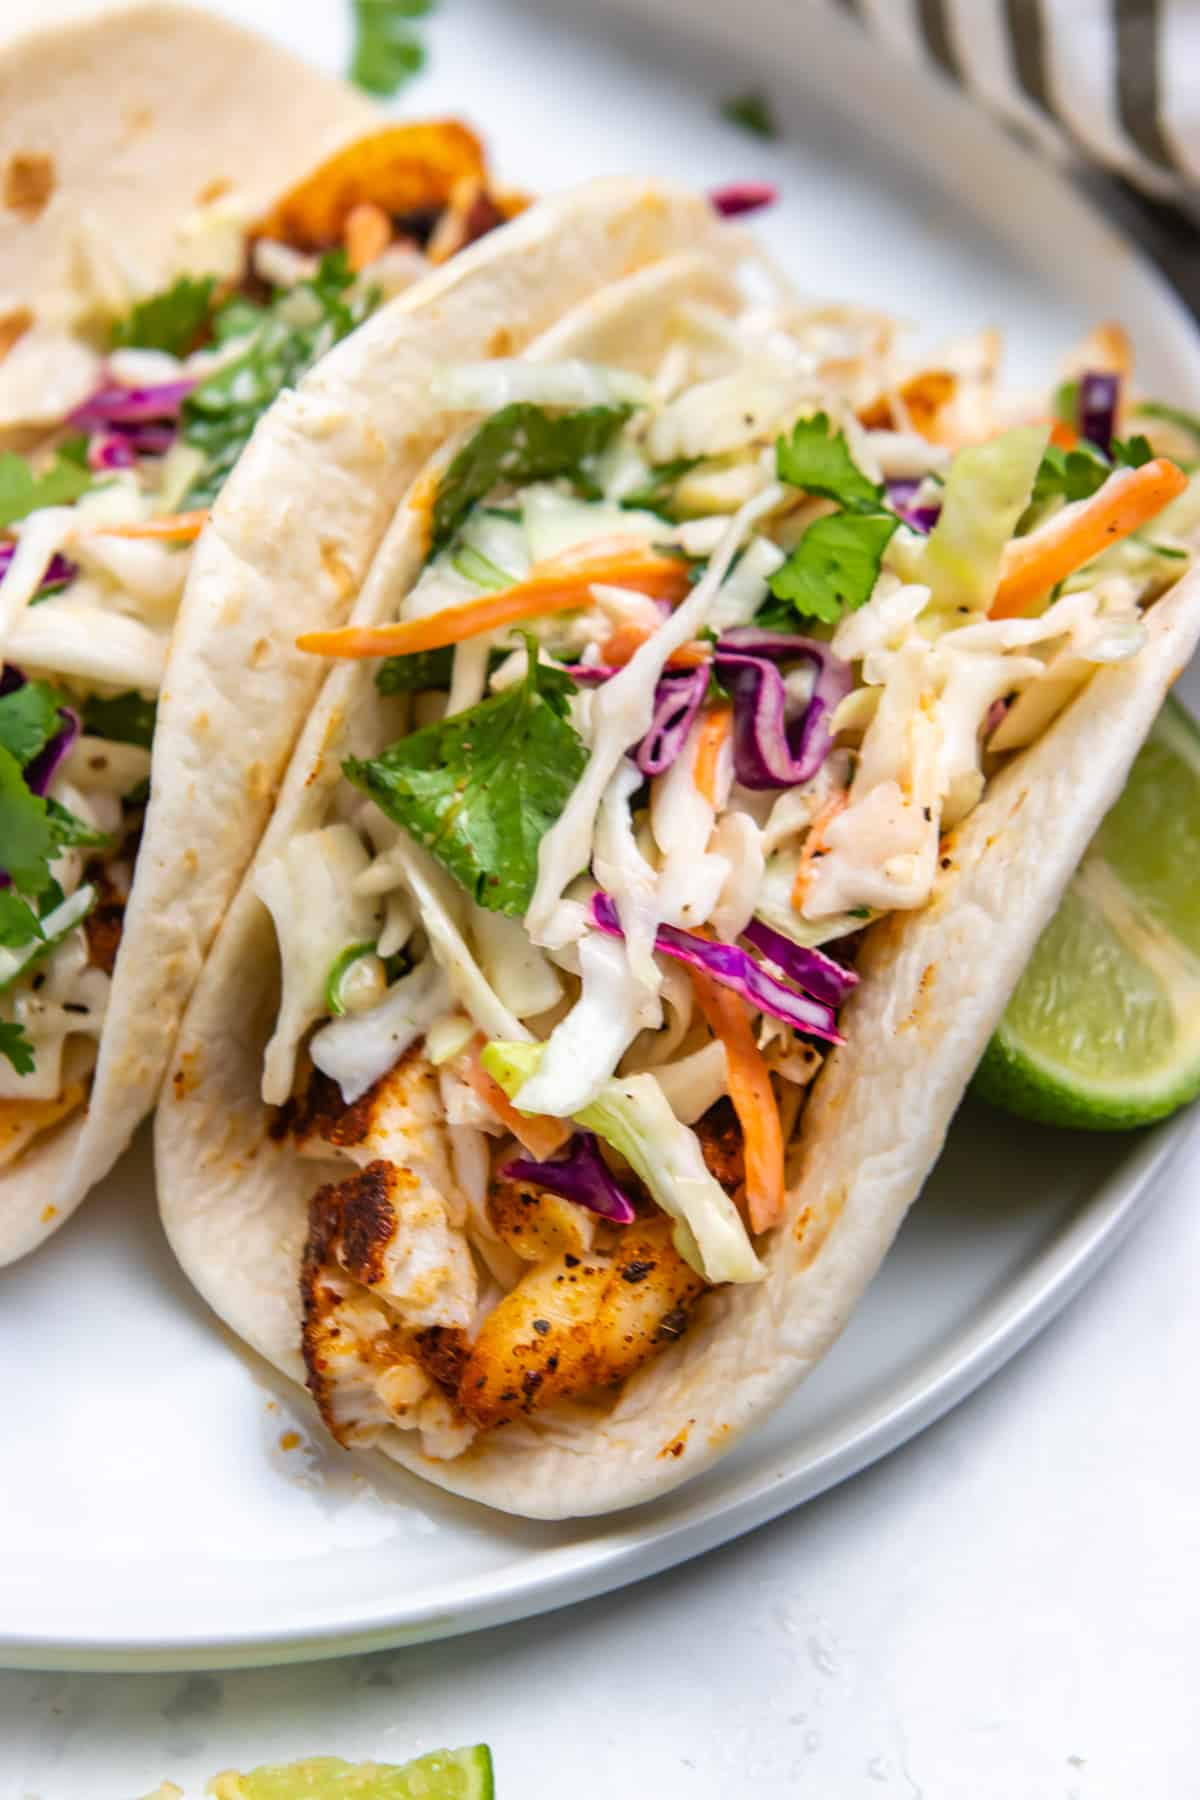 Air fryer fish tacos on white plate with slaw and fresh cilantro.